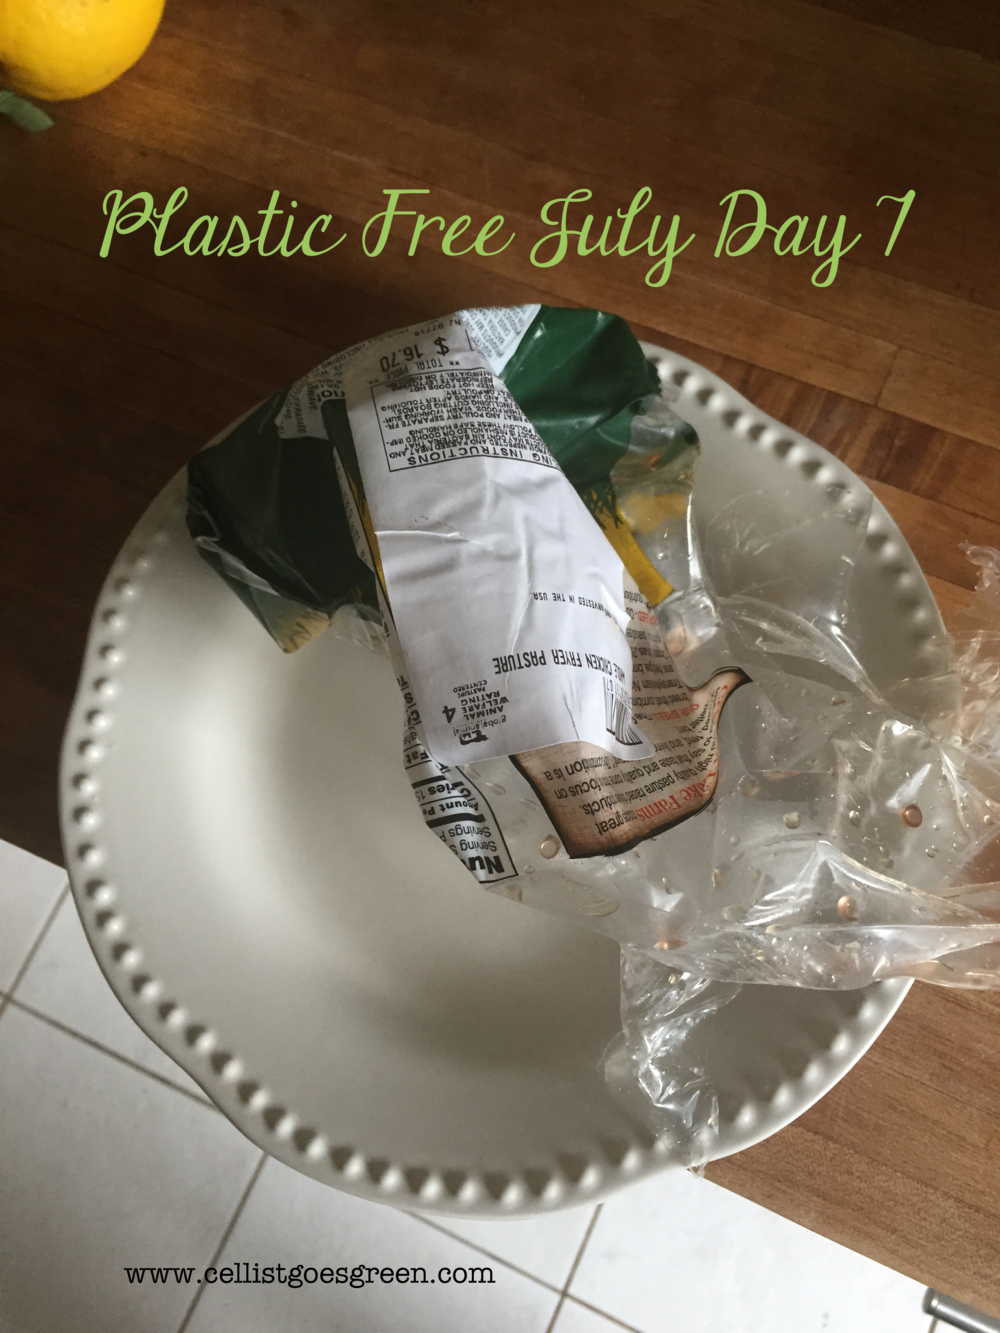 Plastic Free July Day 7 | Cellist Goes Green